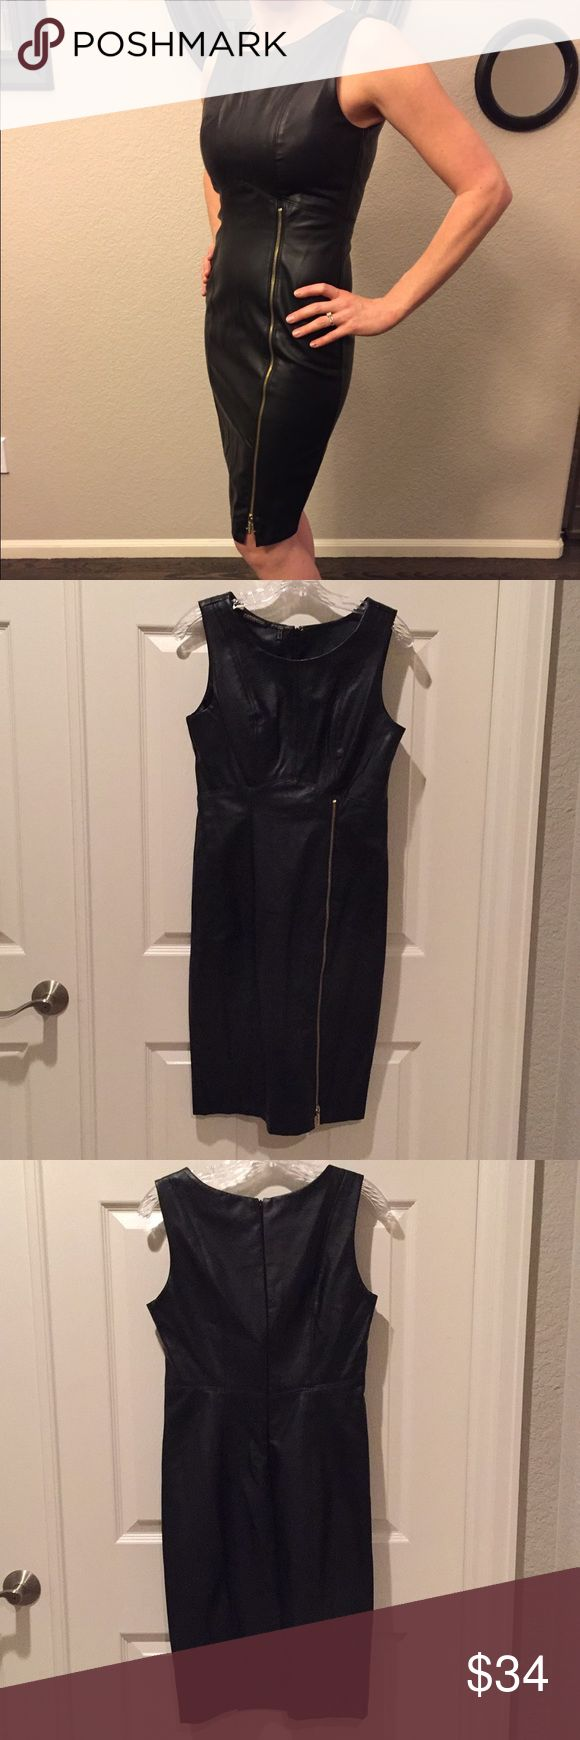 Kardashian Kollection black pleather dress NWT This dress is smokin'! Brand new with tags, black pleather dress, size small. Gold zipper on left side comes up to waist. This is a staple wardrobe piece! Kardashian Kollection Dresses Midi